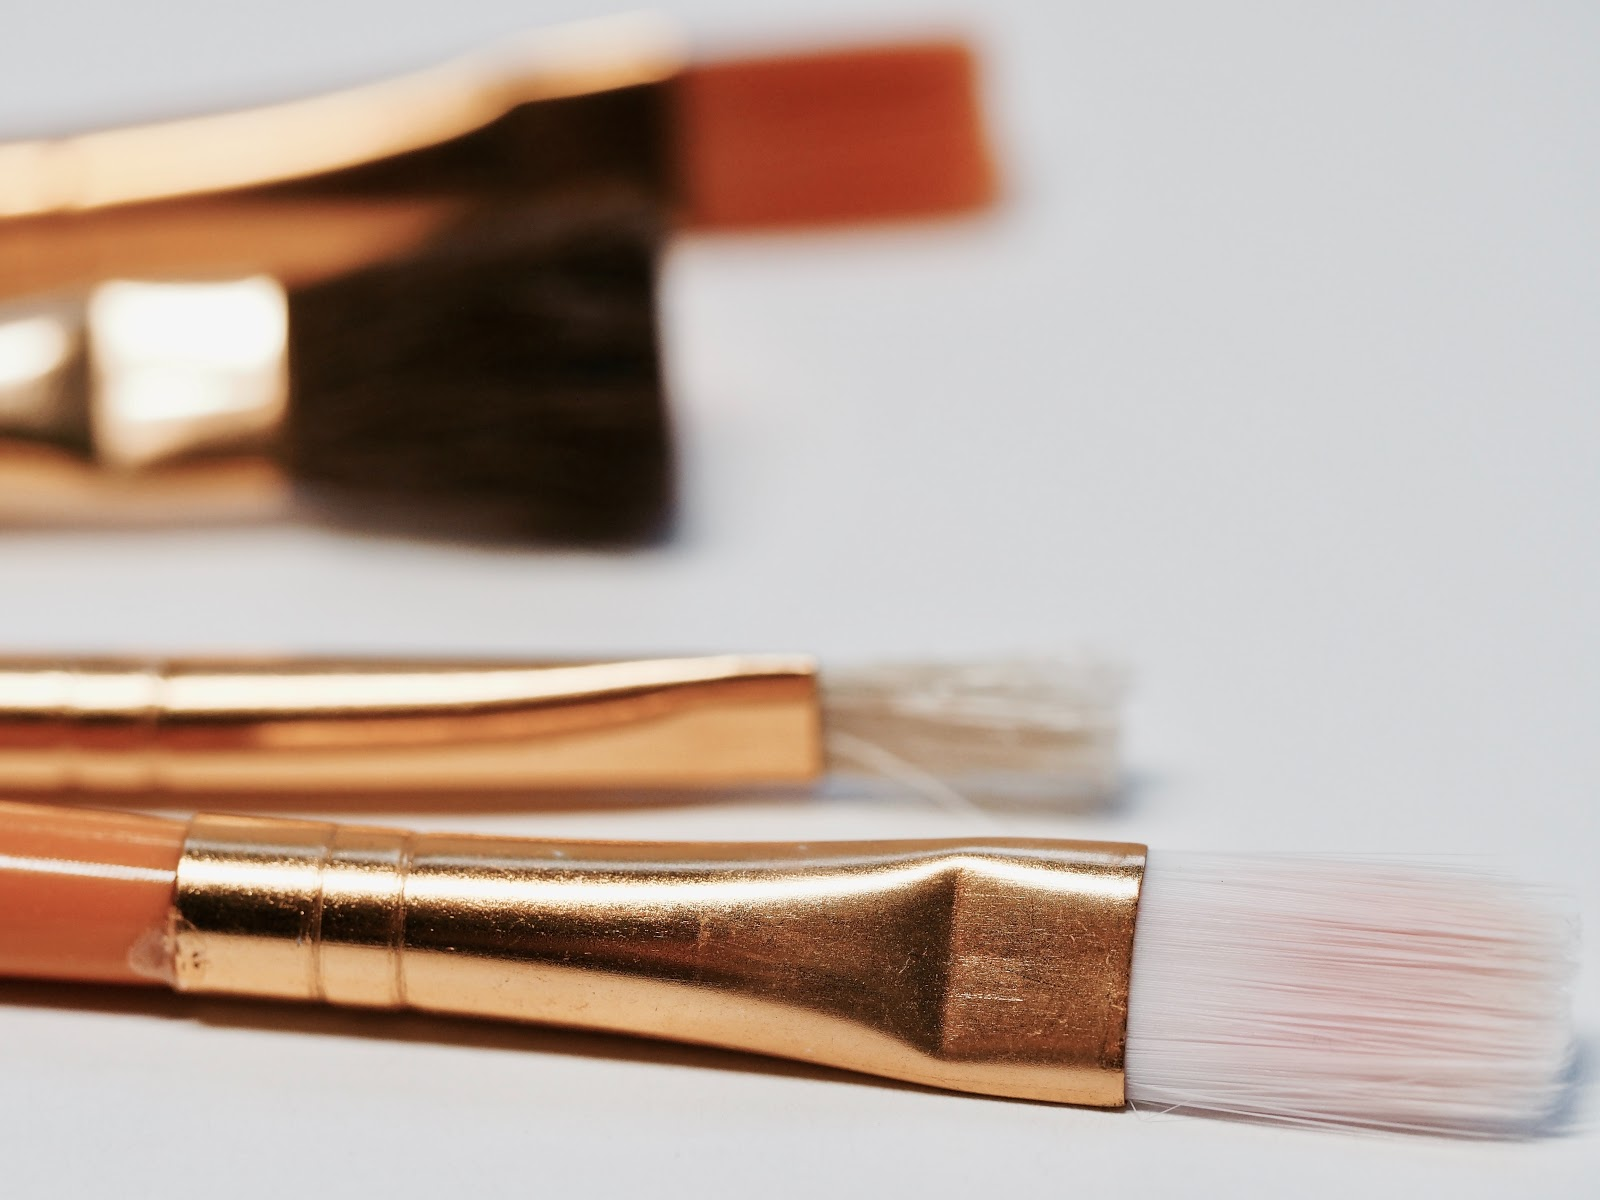 How to Clean the Makeup Brushes